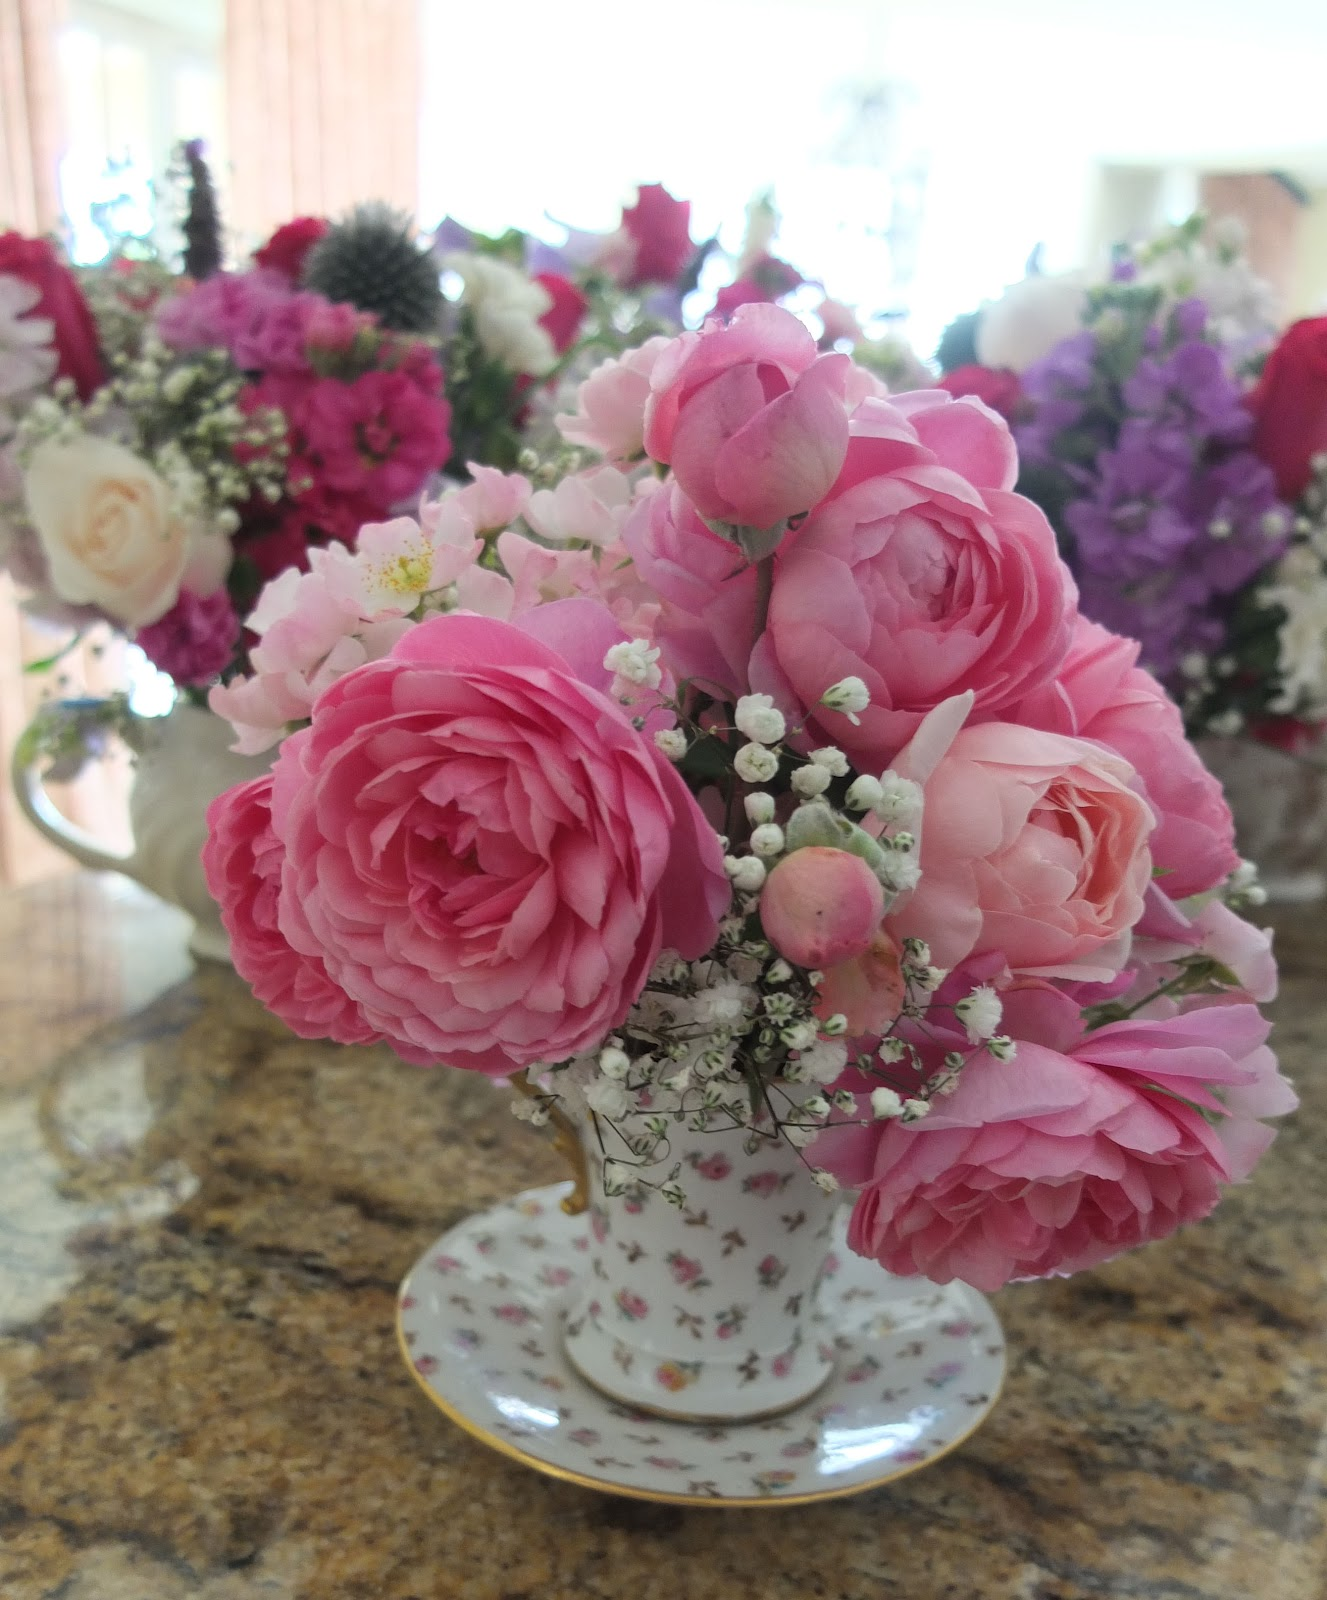 Antique Floral: Antique Style: Antique Teapot Flower Arrangements At A Wedding